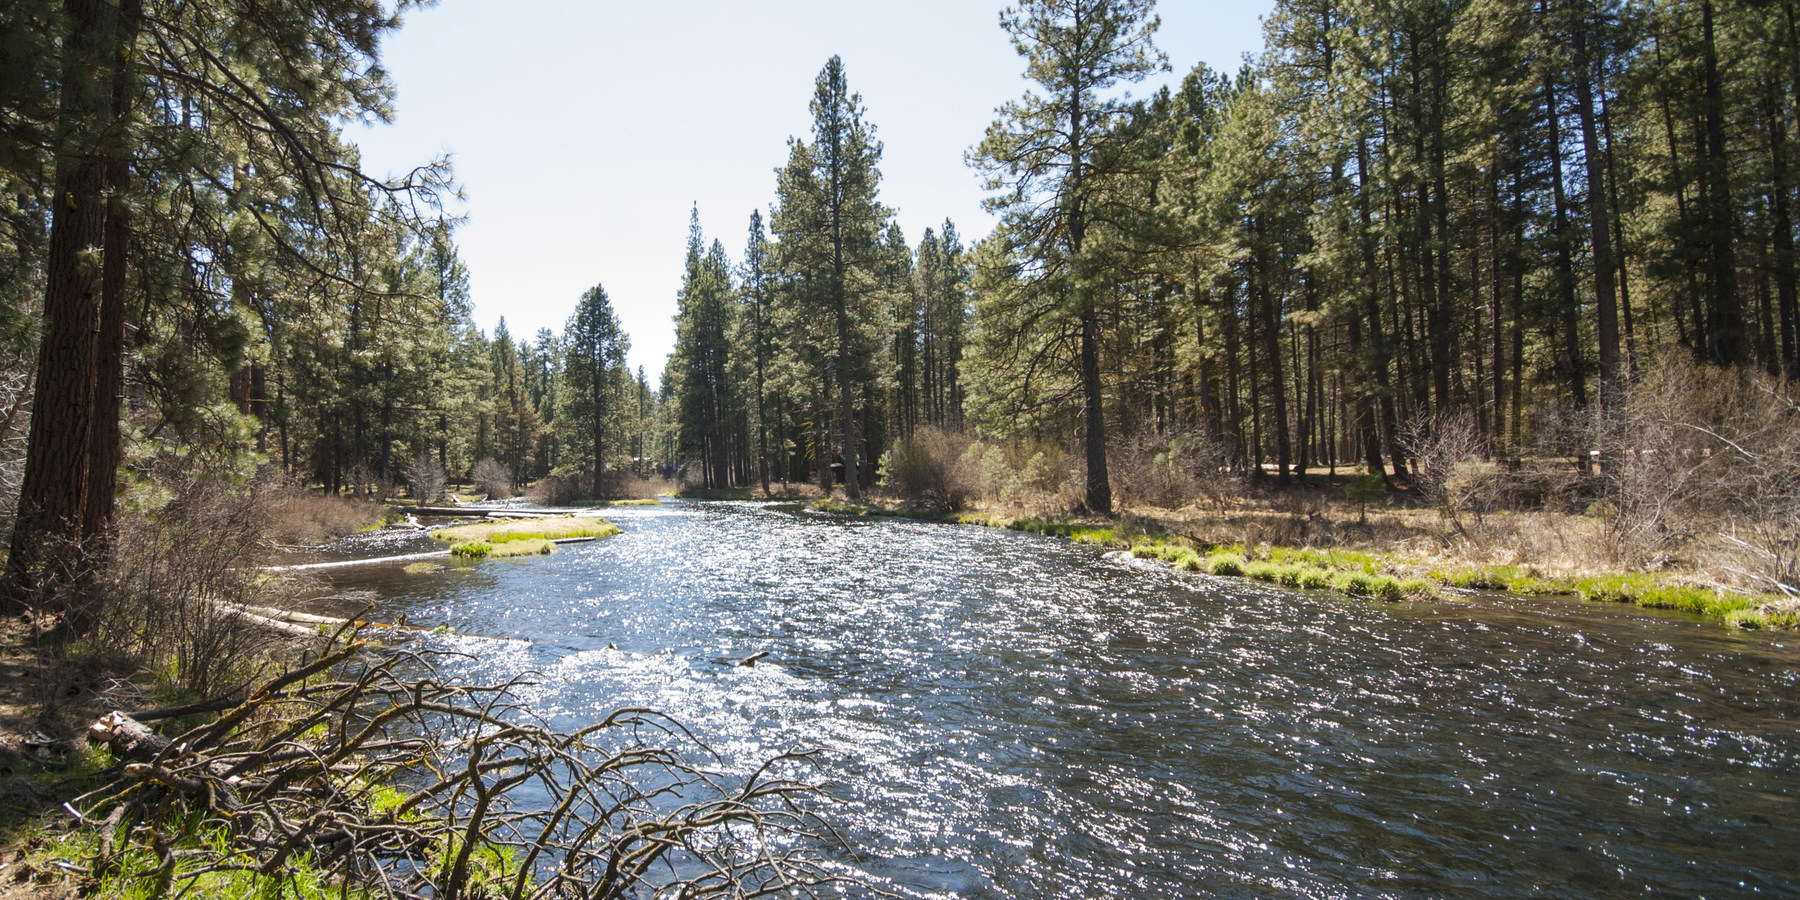 camp sherman dating site Stay in immaculate vintage cabins located under majestic ponderosa pines right on the banks of the metolius river, near sisters, in central oregon call 800-595-6290 for reservations.